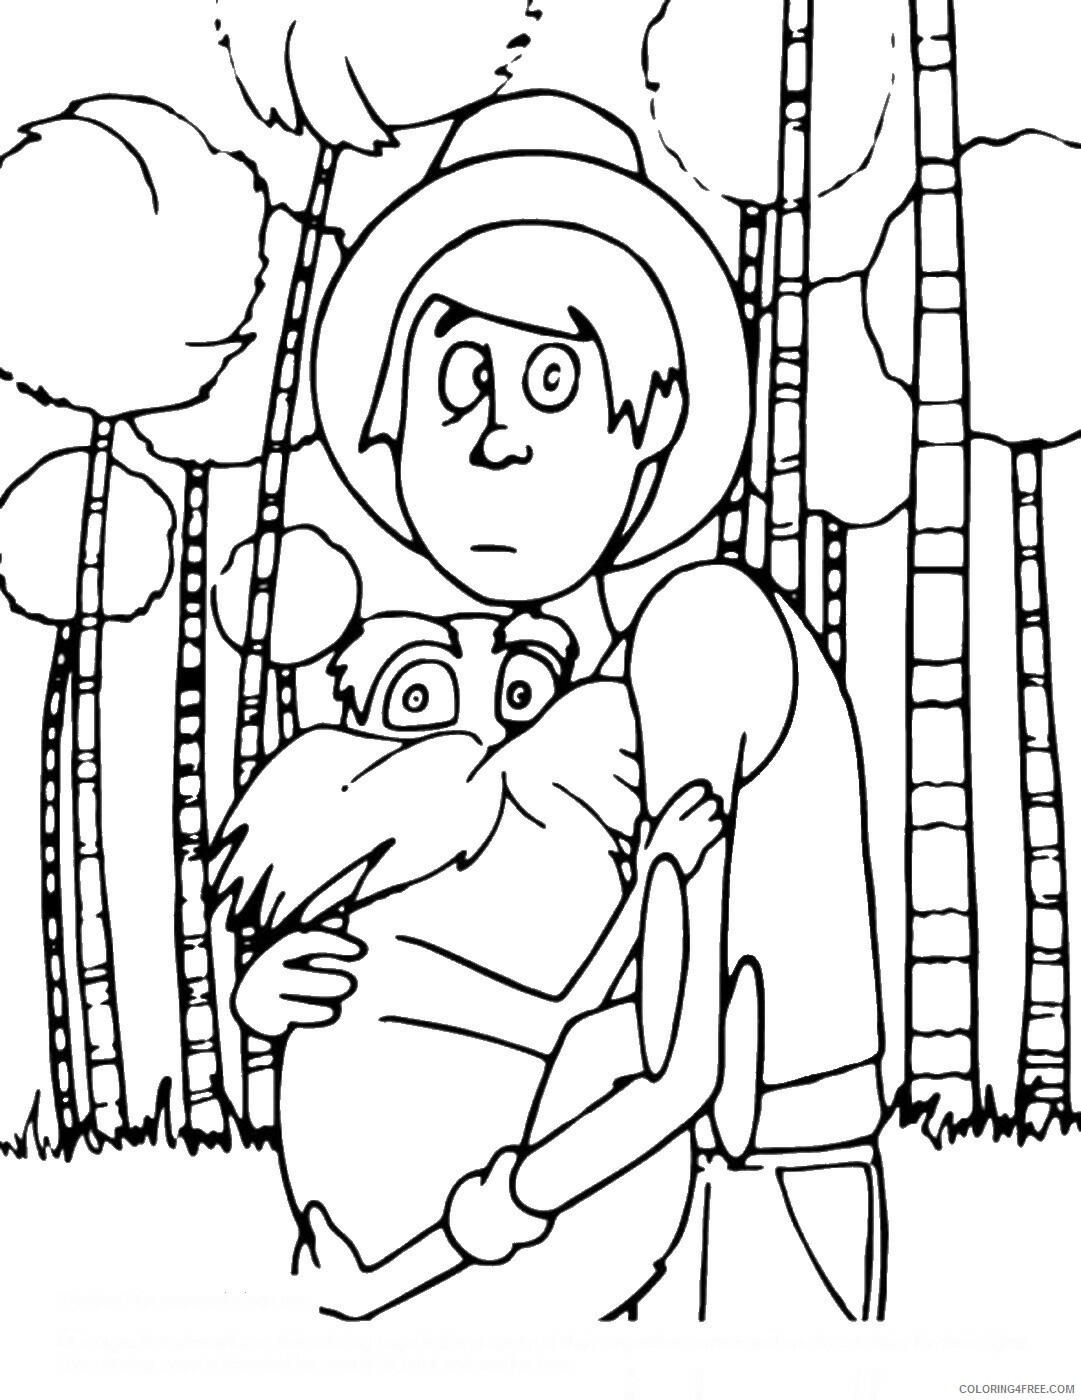 The Lorax Coloring Pages TV Film the_lorax_cl_02 Printable 2020 09315 Coloring4free